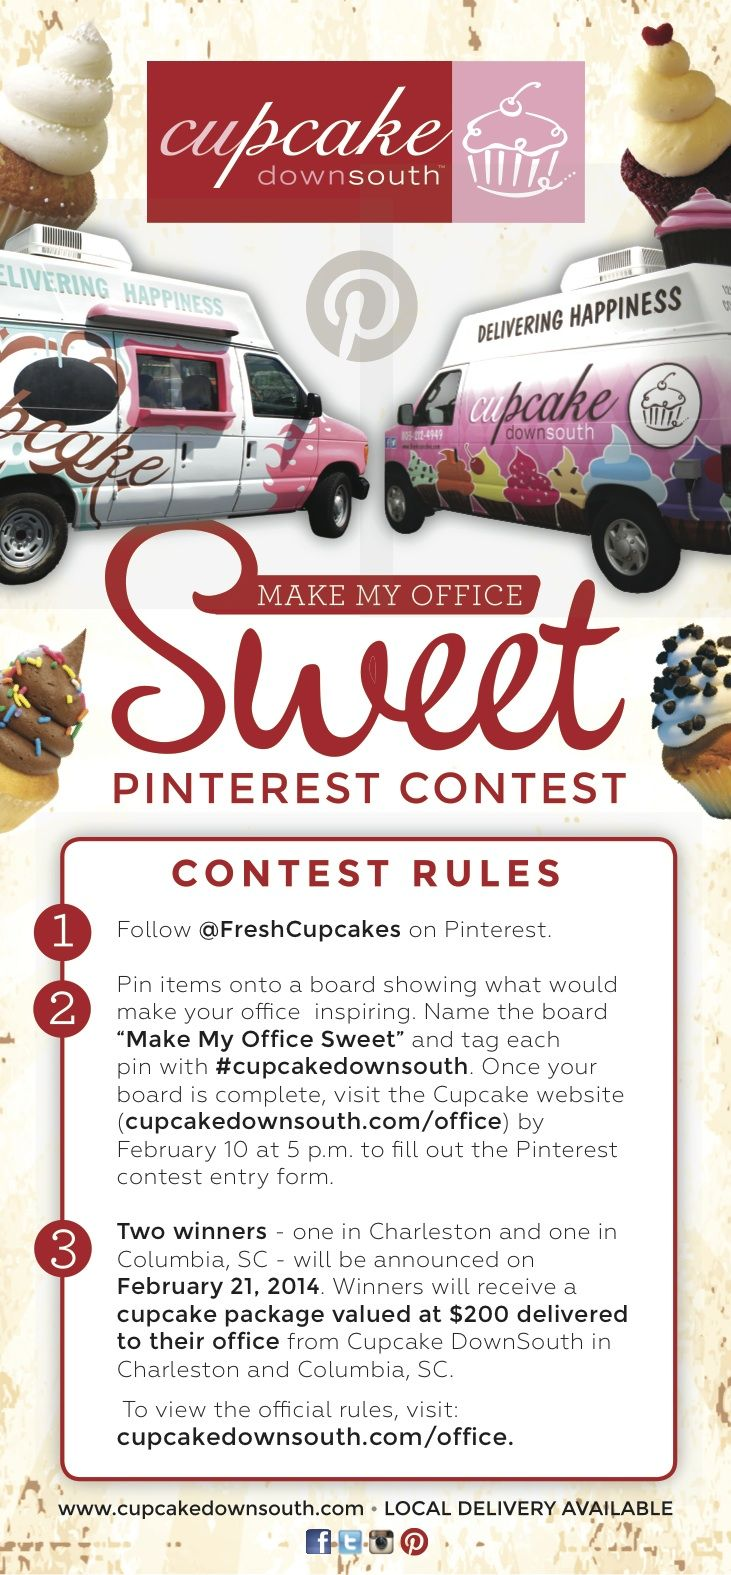 2. Pin items showing what would make your . Once your board is complete, visit the Cupcake website (cupcakedownsouth.com/office) by February 10 at 5 p.m. to fill out the entry form. Two winners (one in Charleston & one in Columbia) will be announced on February 21. 3. Winners will receive a cupcake package valued at $200 delivered to their office from Cupcake DownSouth.: Cupcake Package, Cupcake Website, Office Sweet, Cupcake Downsouth, Contest, Cupcake Place, Follow Cupcake, Pin Cupcakedownsouth, Cupcakedownsouth Com Office